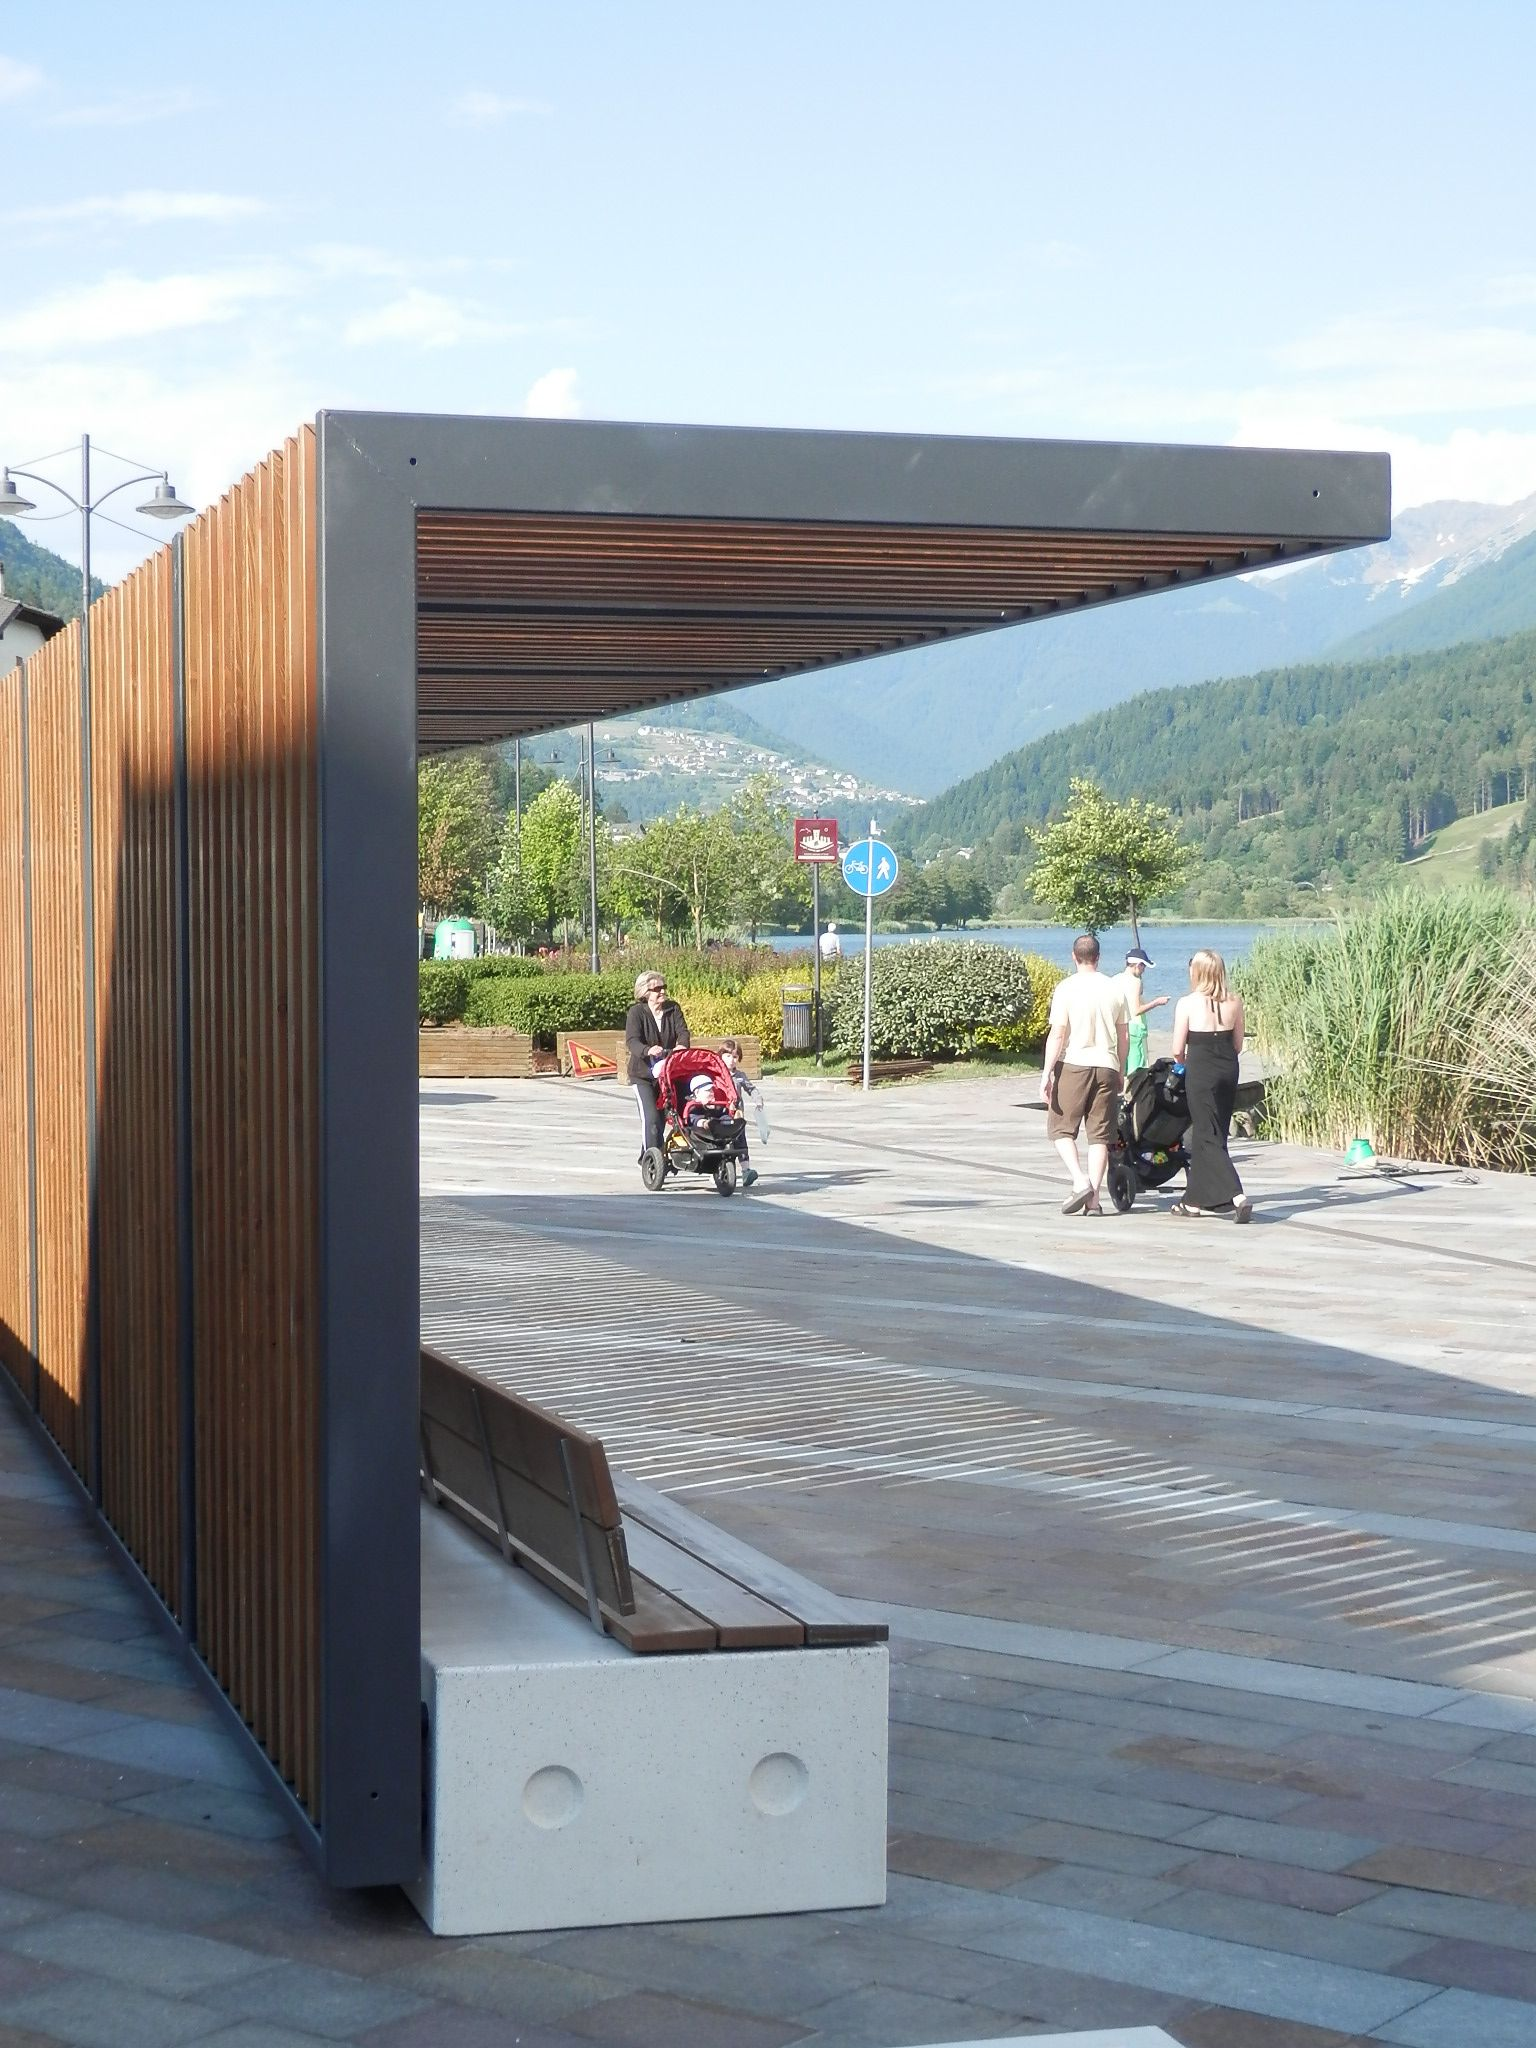 of the most creative benches and seats ever creative trentino bellitalia very elegant street furniture solutions